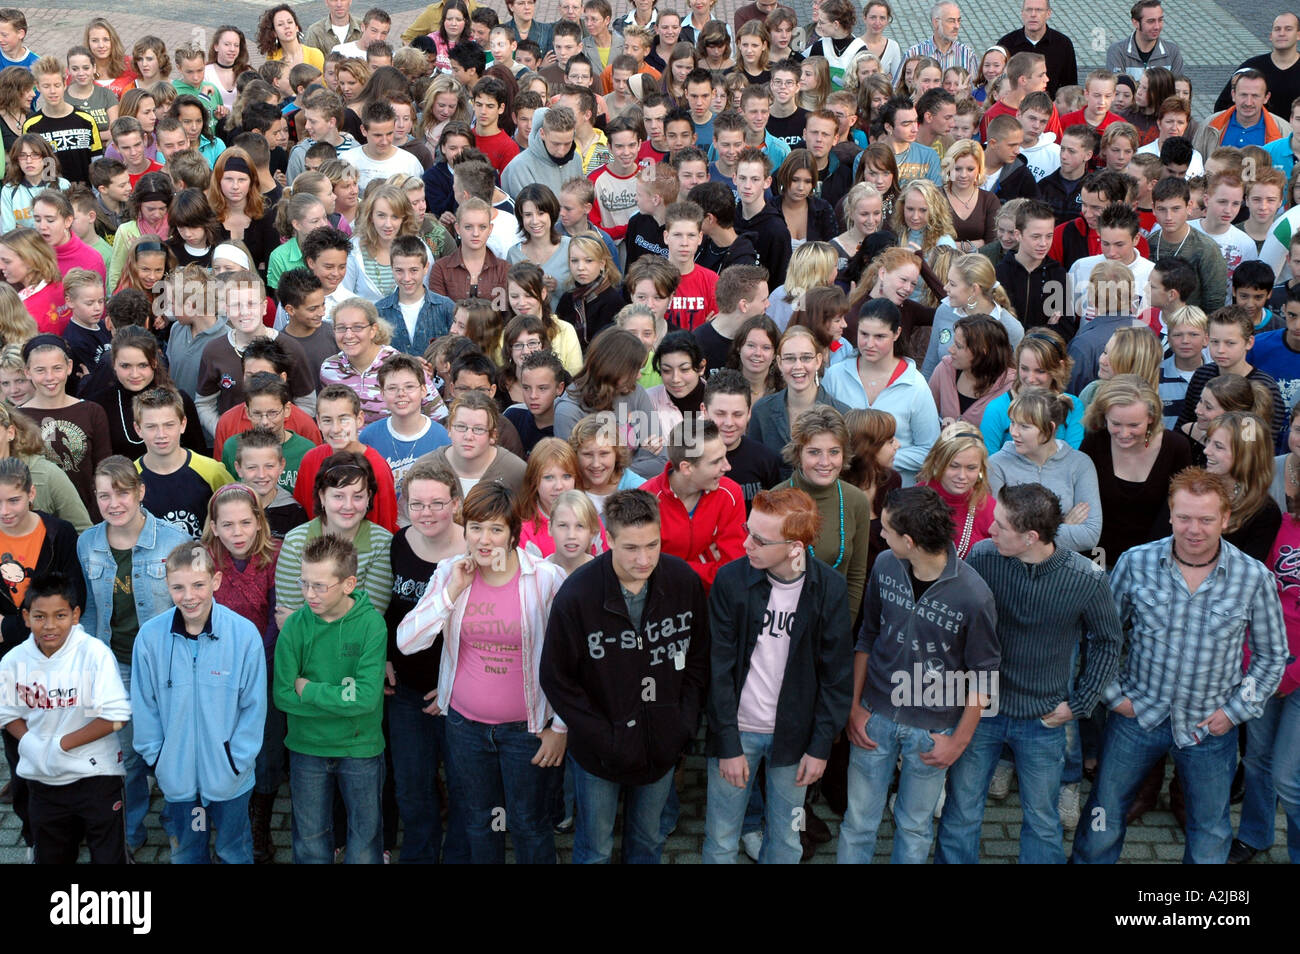 Image result for large group of children pic